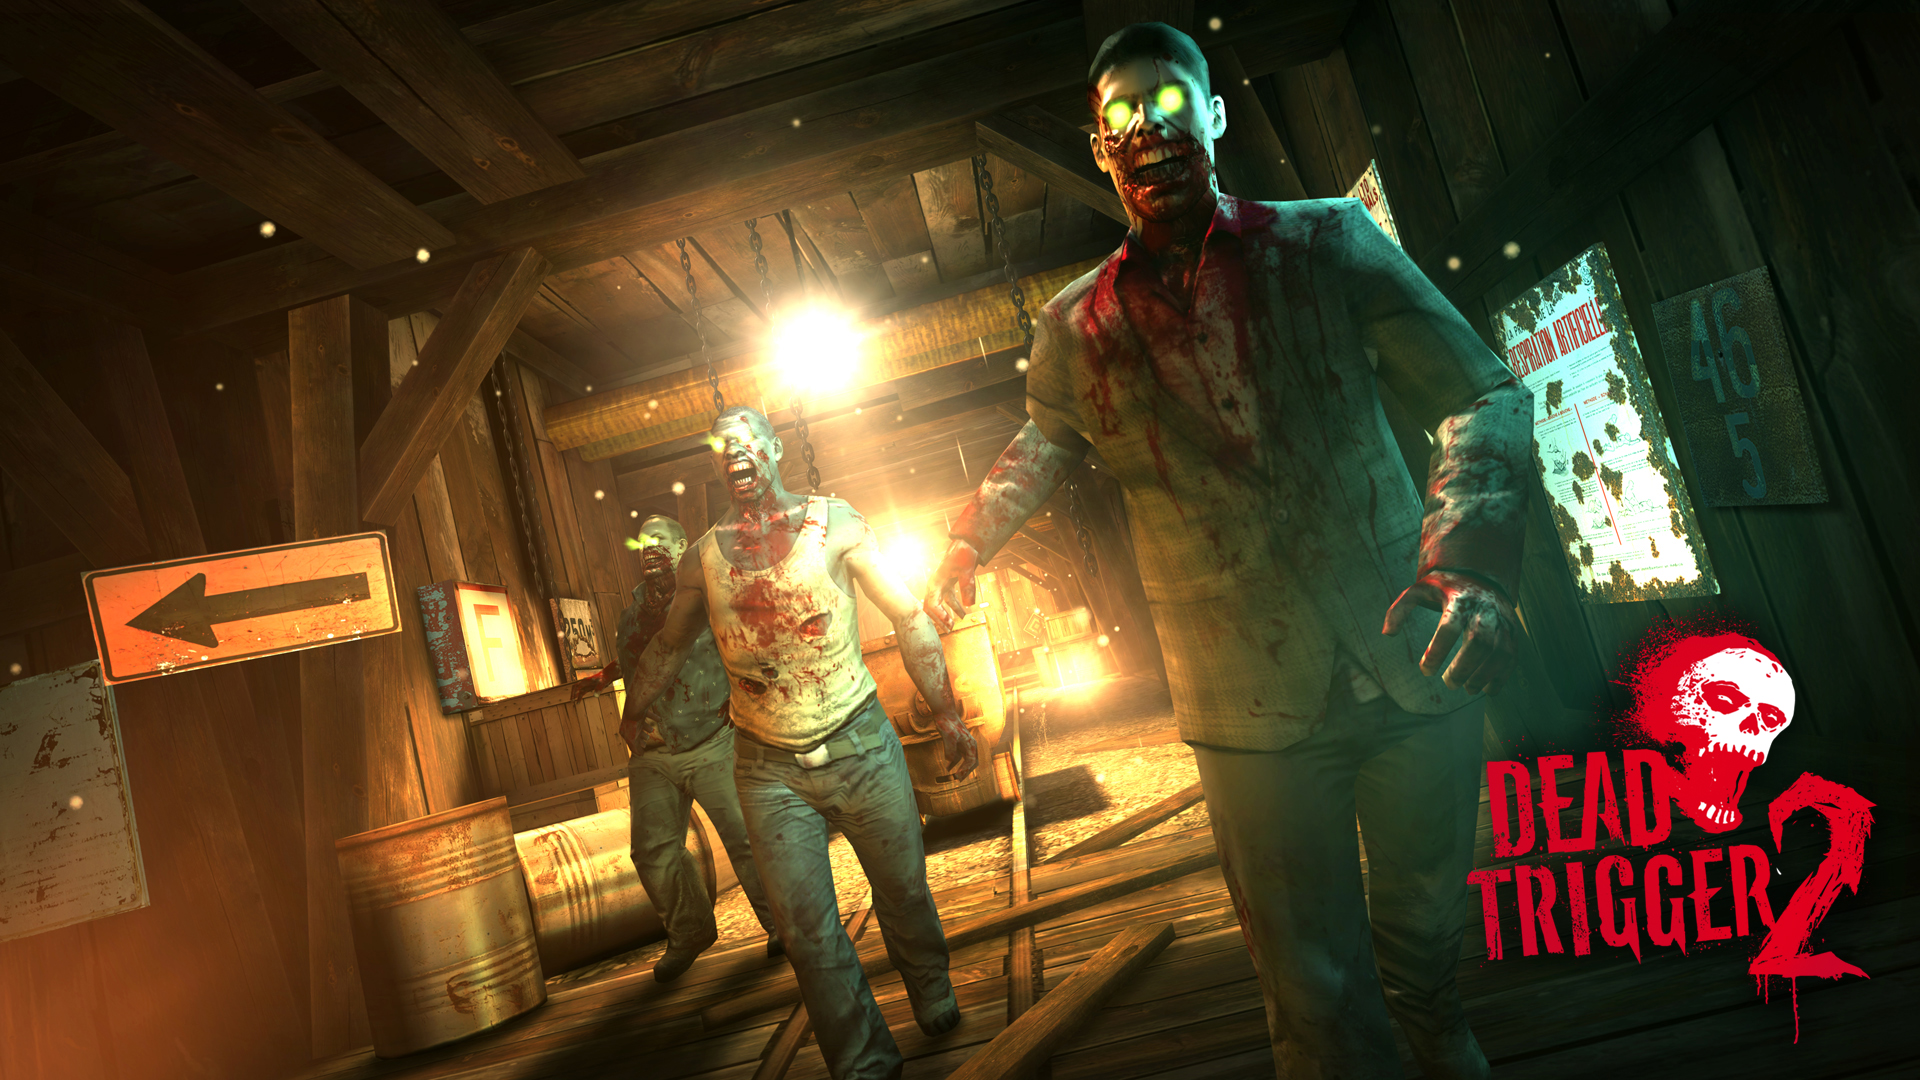 Dead Trigger 2 For Android And Ios To Arrive On October 23